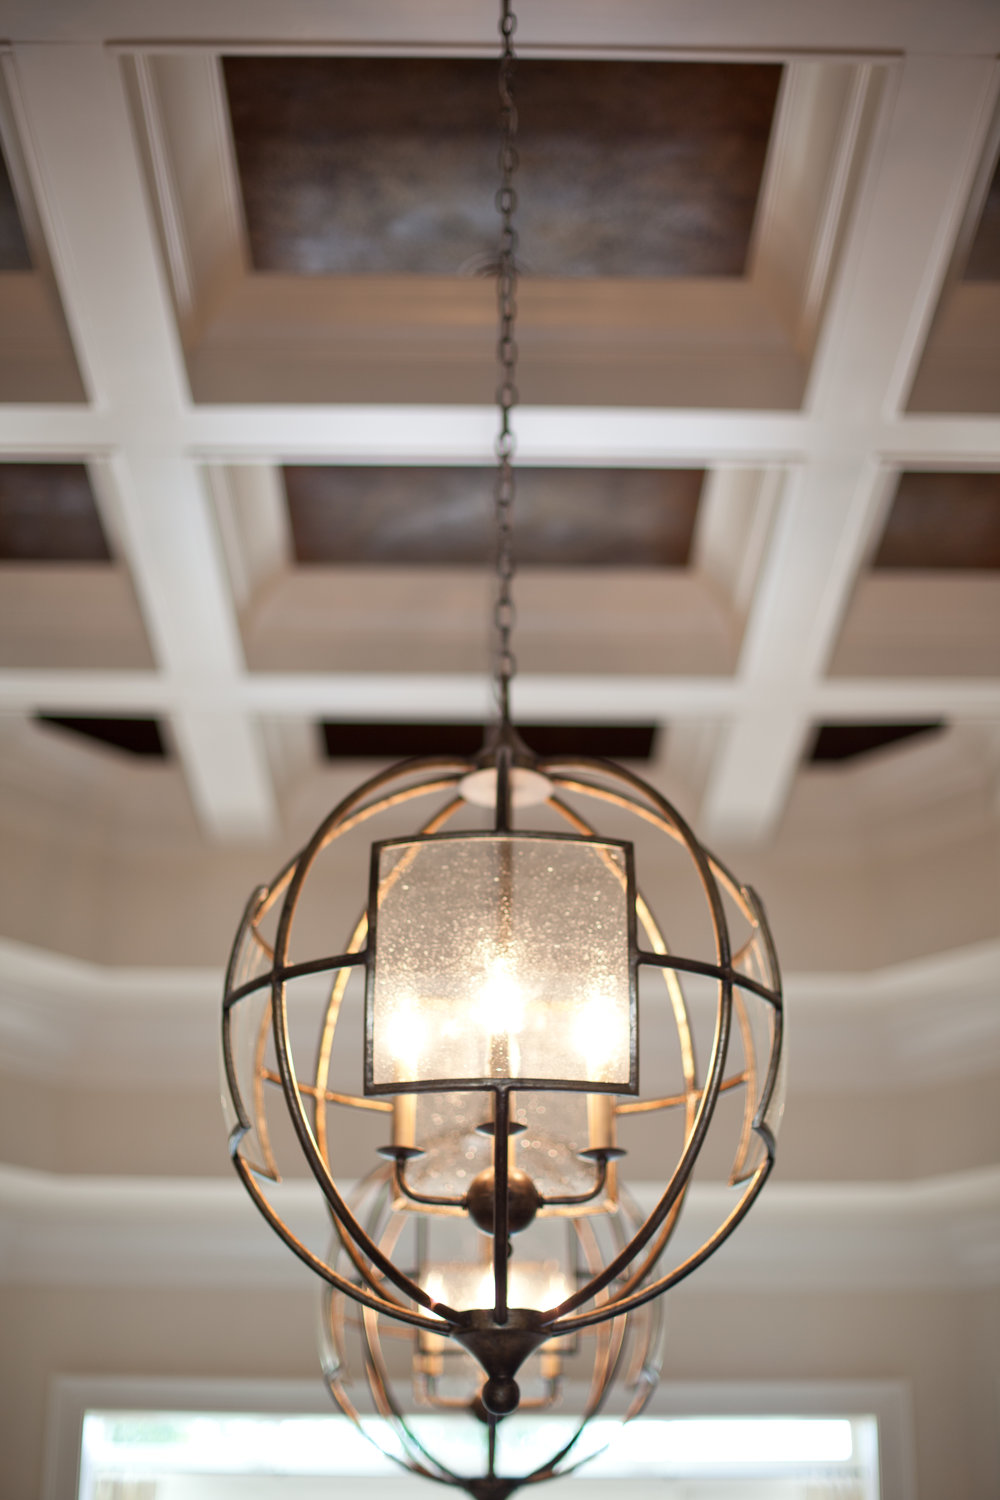 mikoandboonehome/lighting/ceiling/fauxpainting/cofferceilings